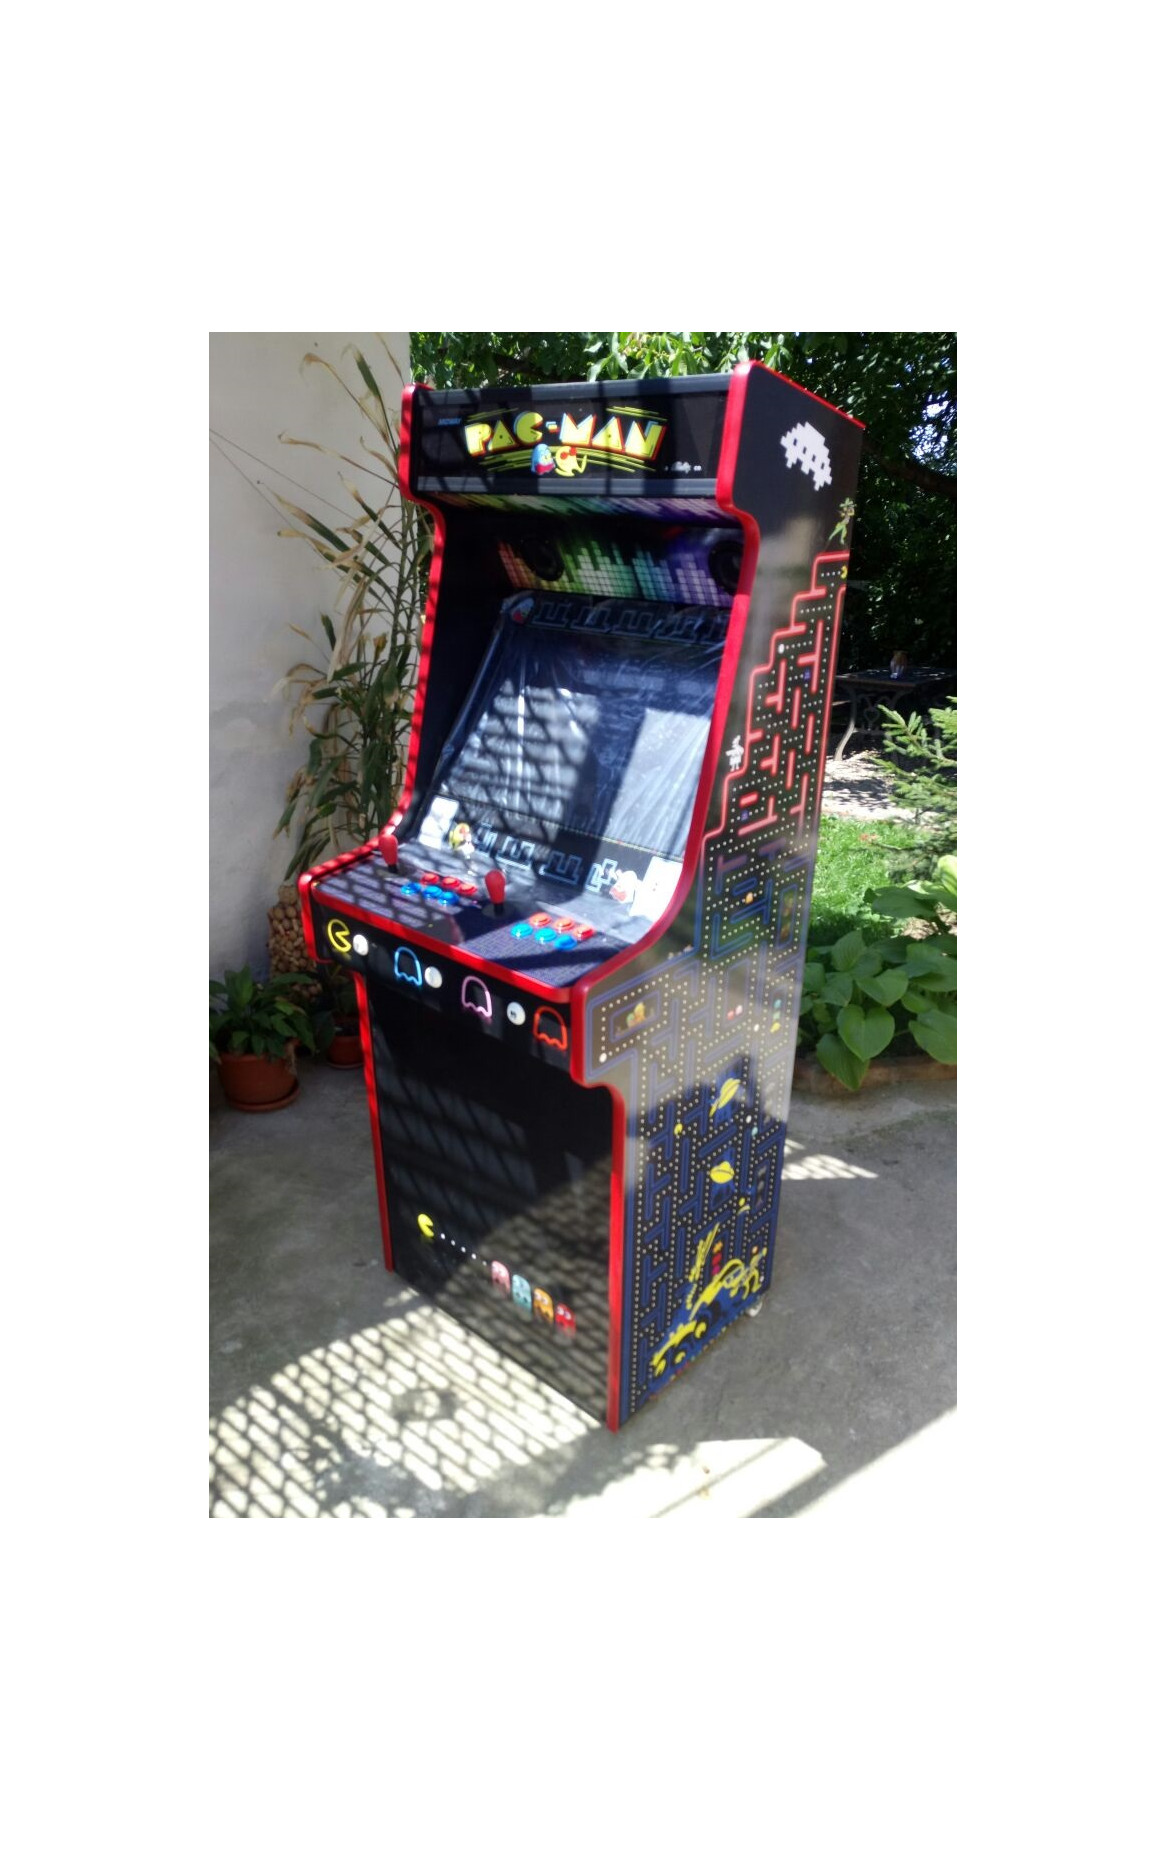 Classic Upright Arcade Machine - PacMan Theme v2